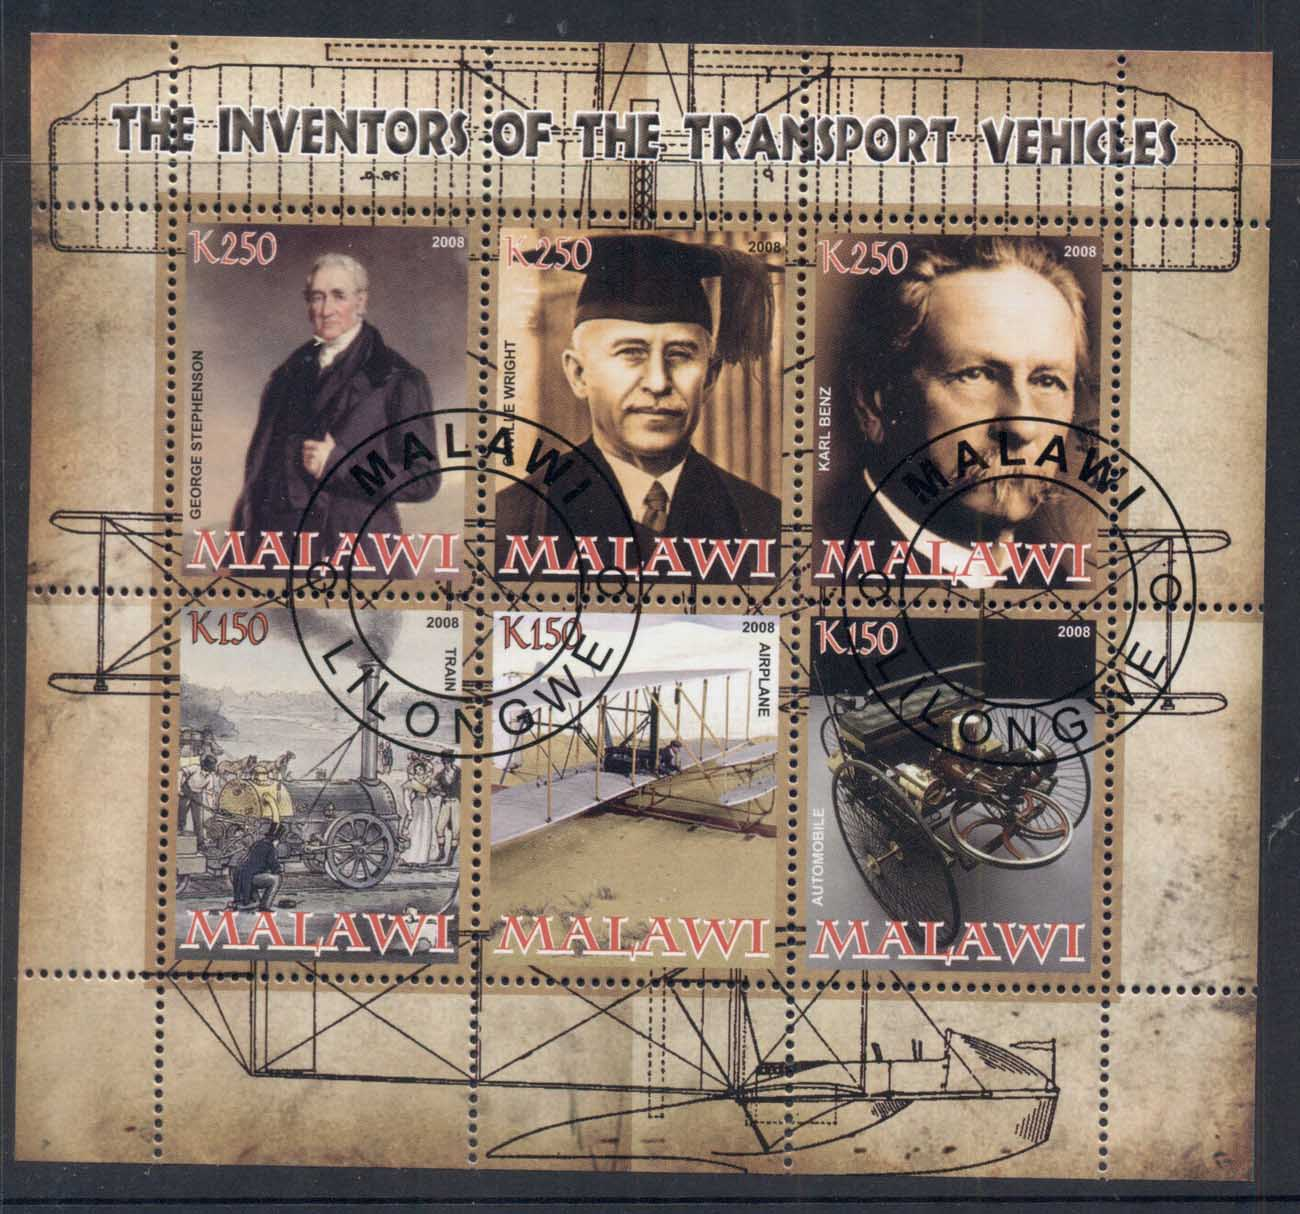 Malawi 2008 Inventors of the Transport Vehicles, Train, Airplane, Car MS CTO